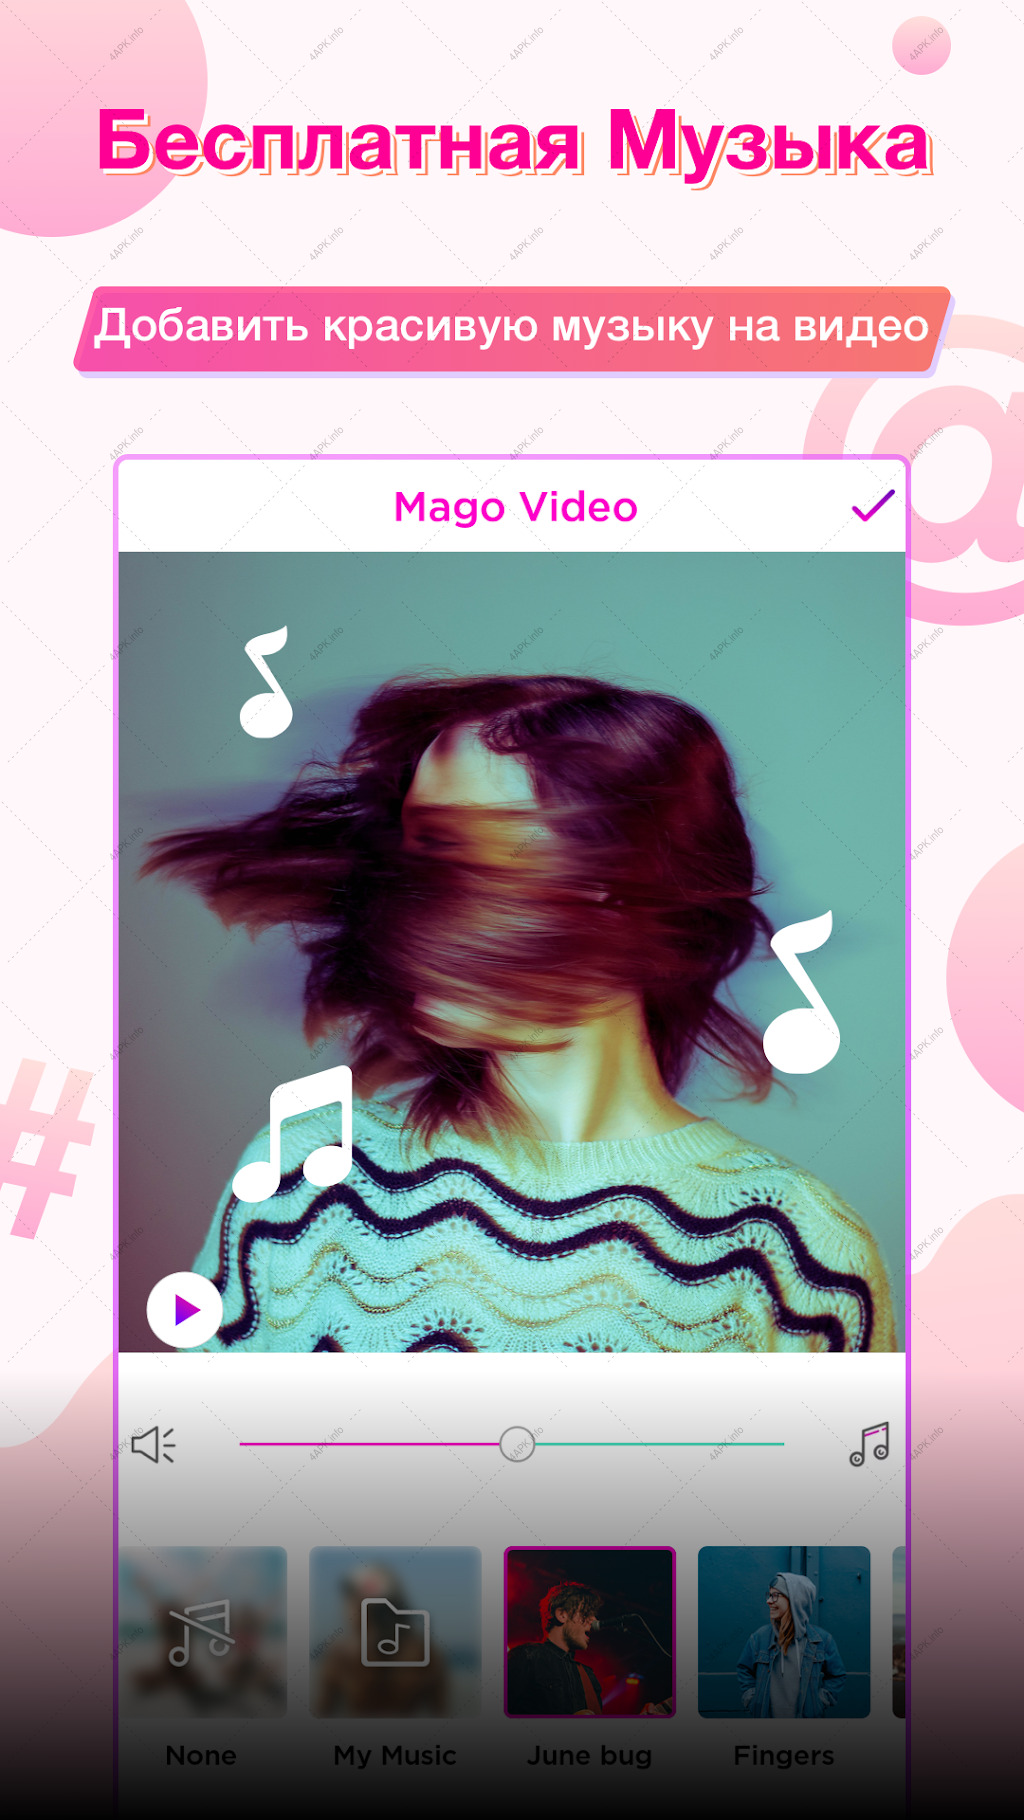 Video Editor Effect, Magic Video Music - MagoVideo screenshot